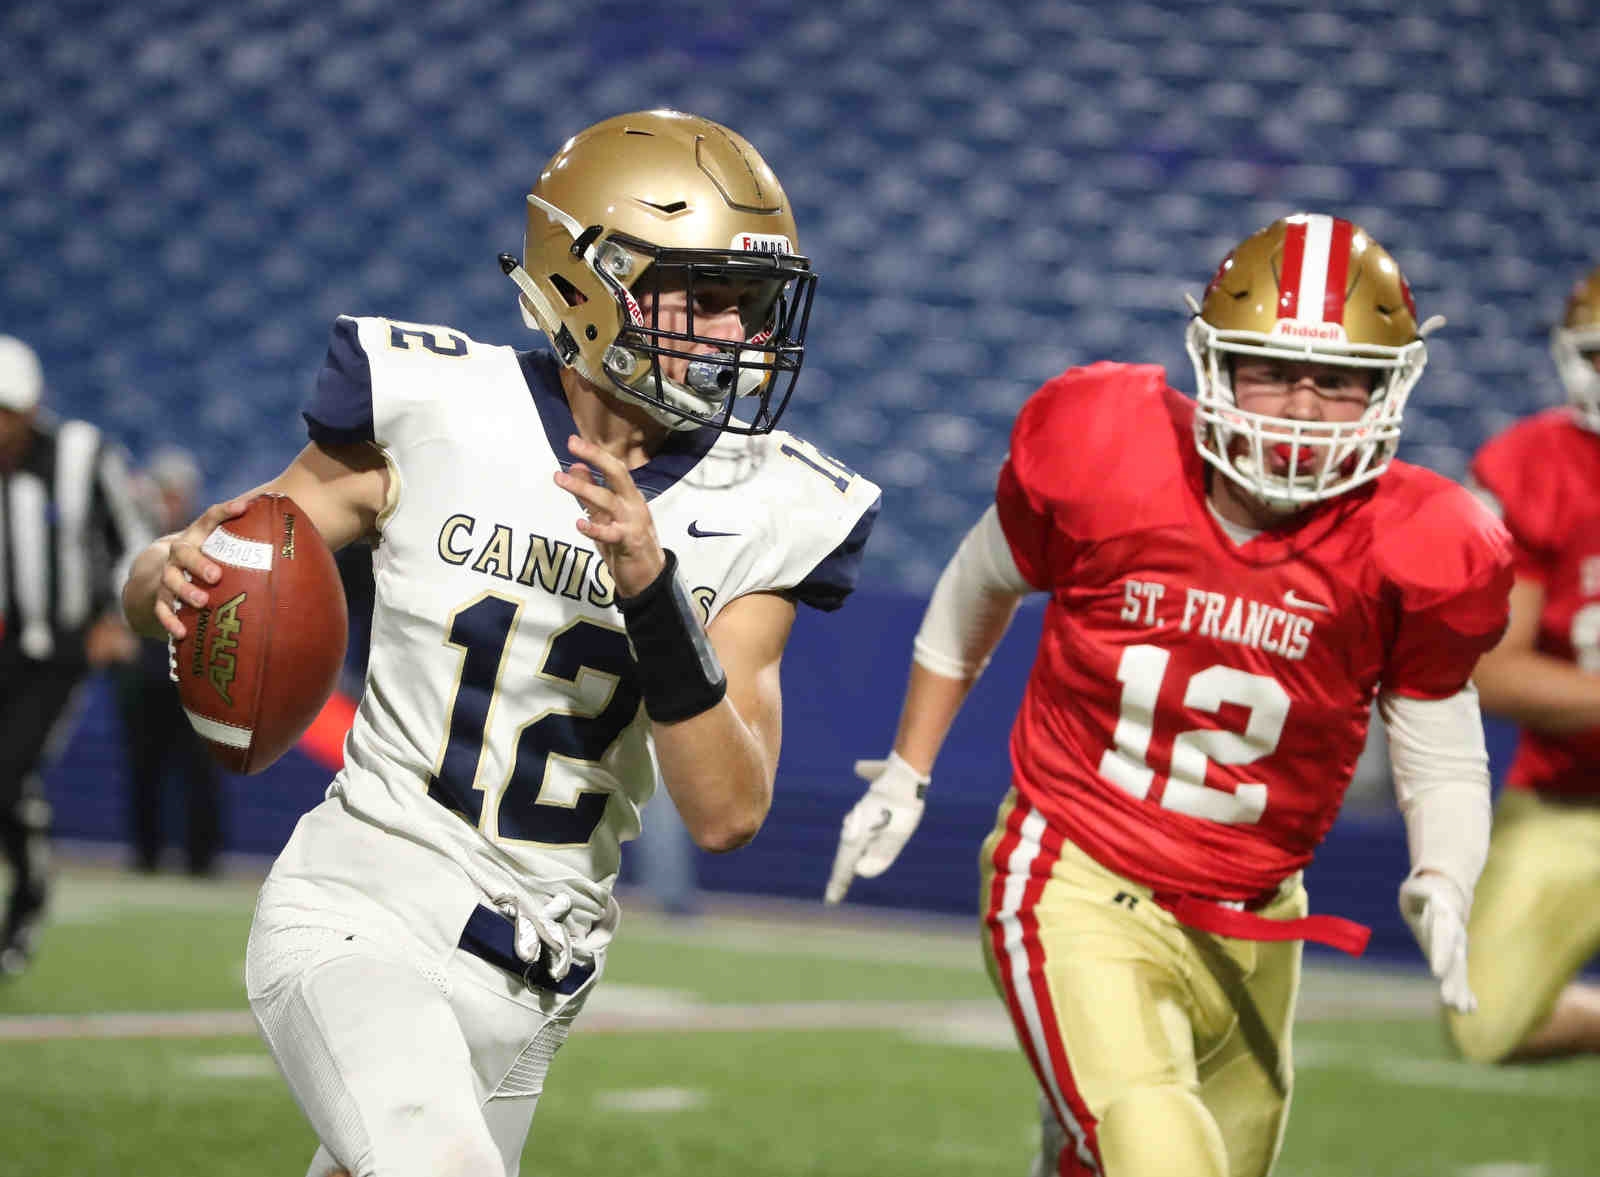 Canisius Jack Westermeier beats St. Francis Jordan Schindler for the two point conversion in the first quarter.